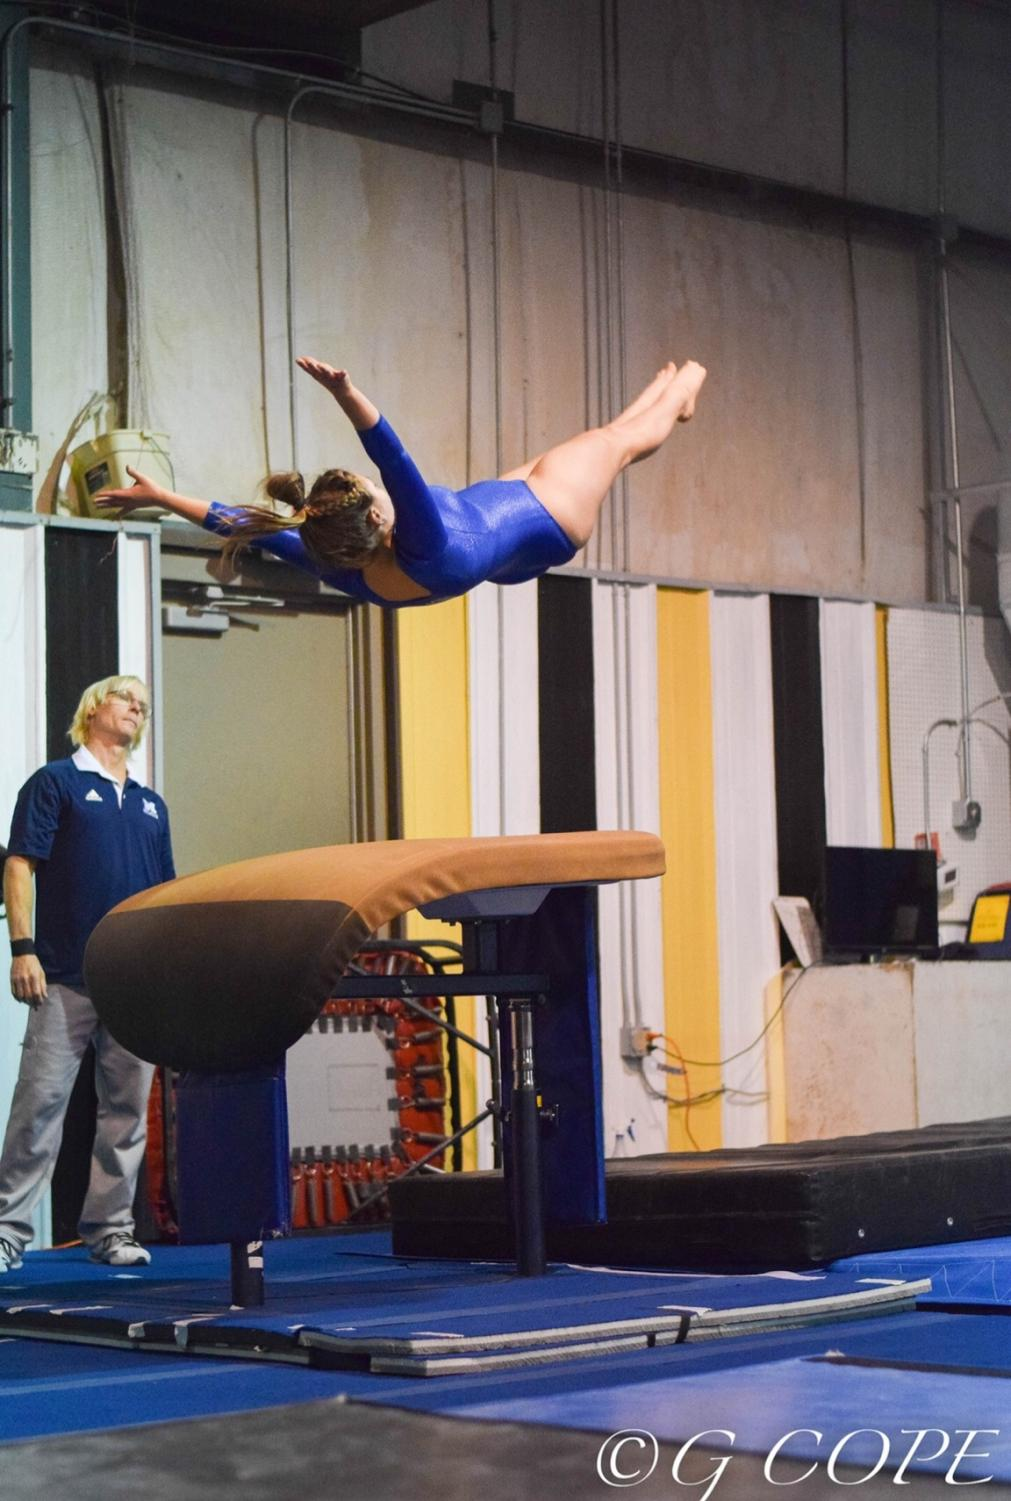 Thrusting herself into the air, senior Andrea Shealey executes a challenging vault routine. As captain, she commends her teammates for their enthusiasm and support of one another.